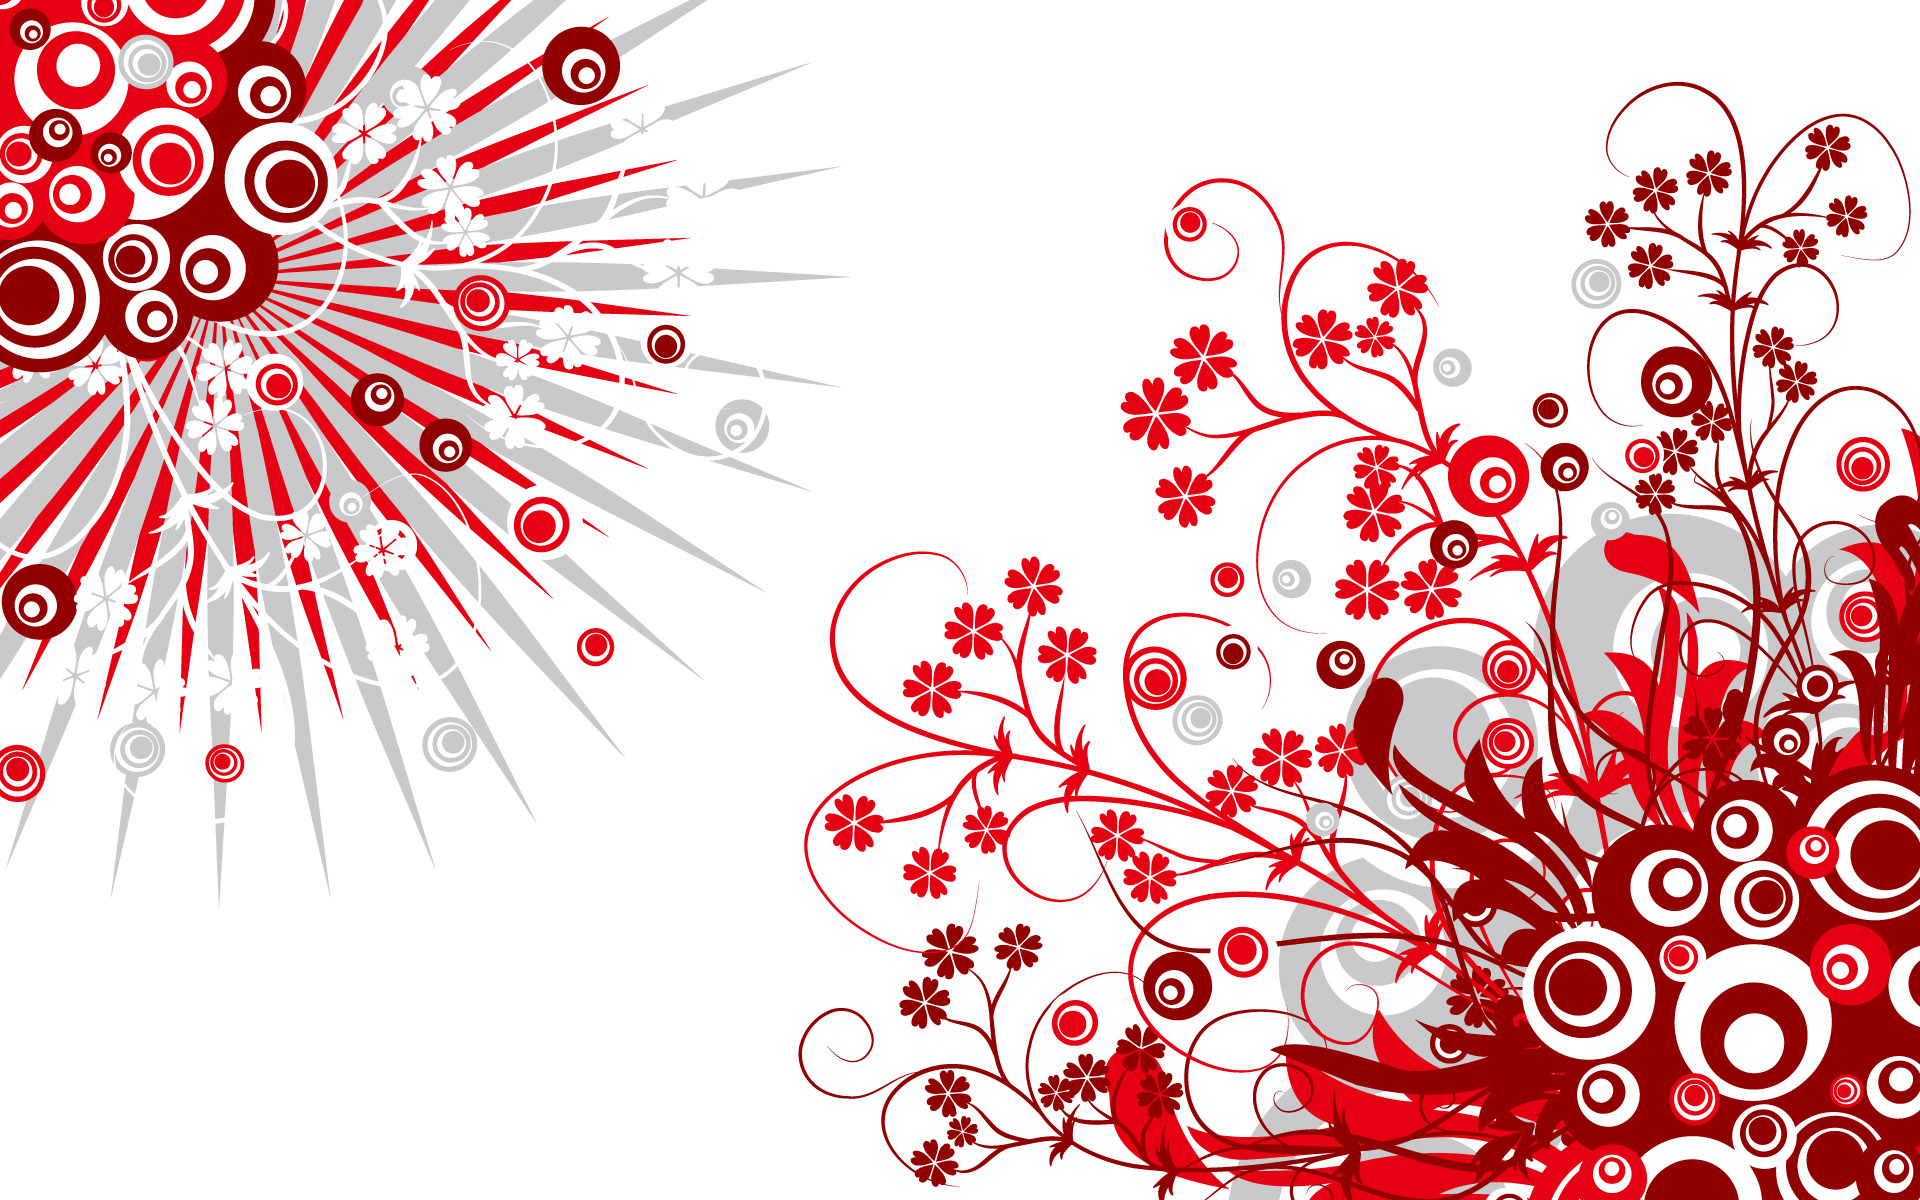 Abstract In Red And White Vectoriales Hd Taringa 738648 Wallpaper wallpaper